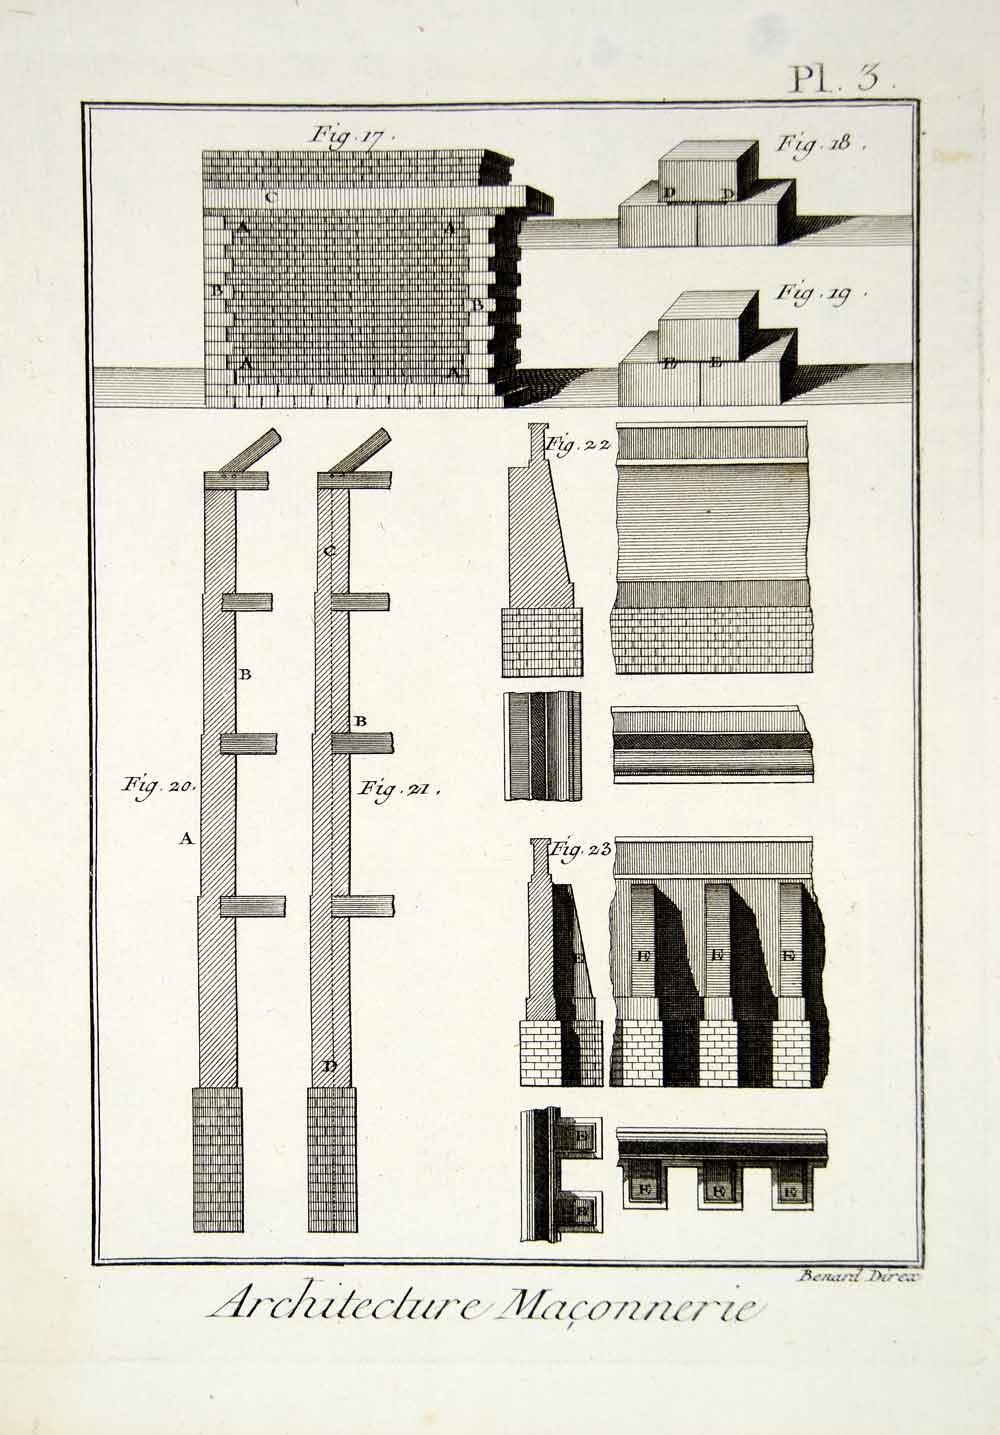 1779 Copper Engraving Architecture Masonry Brick Stone Walls Patterns Print DDR2